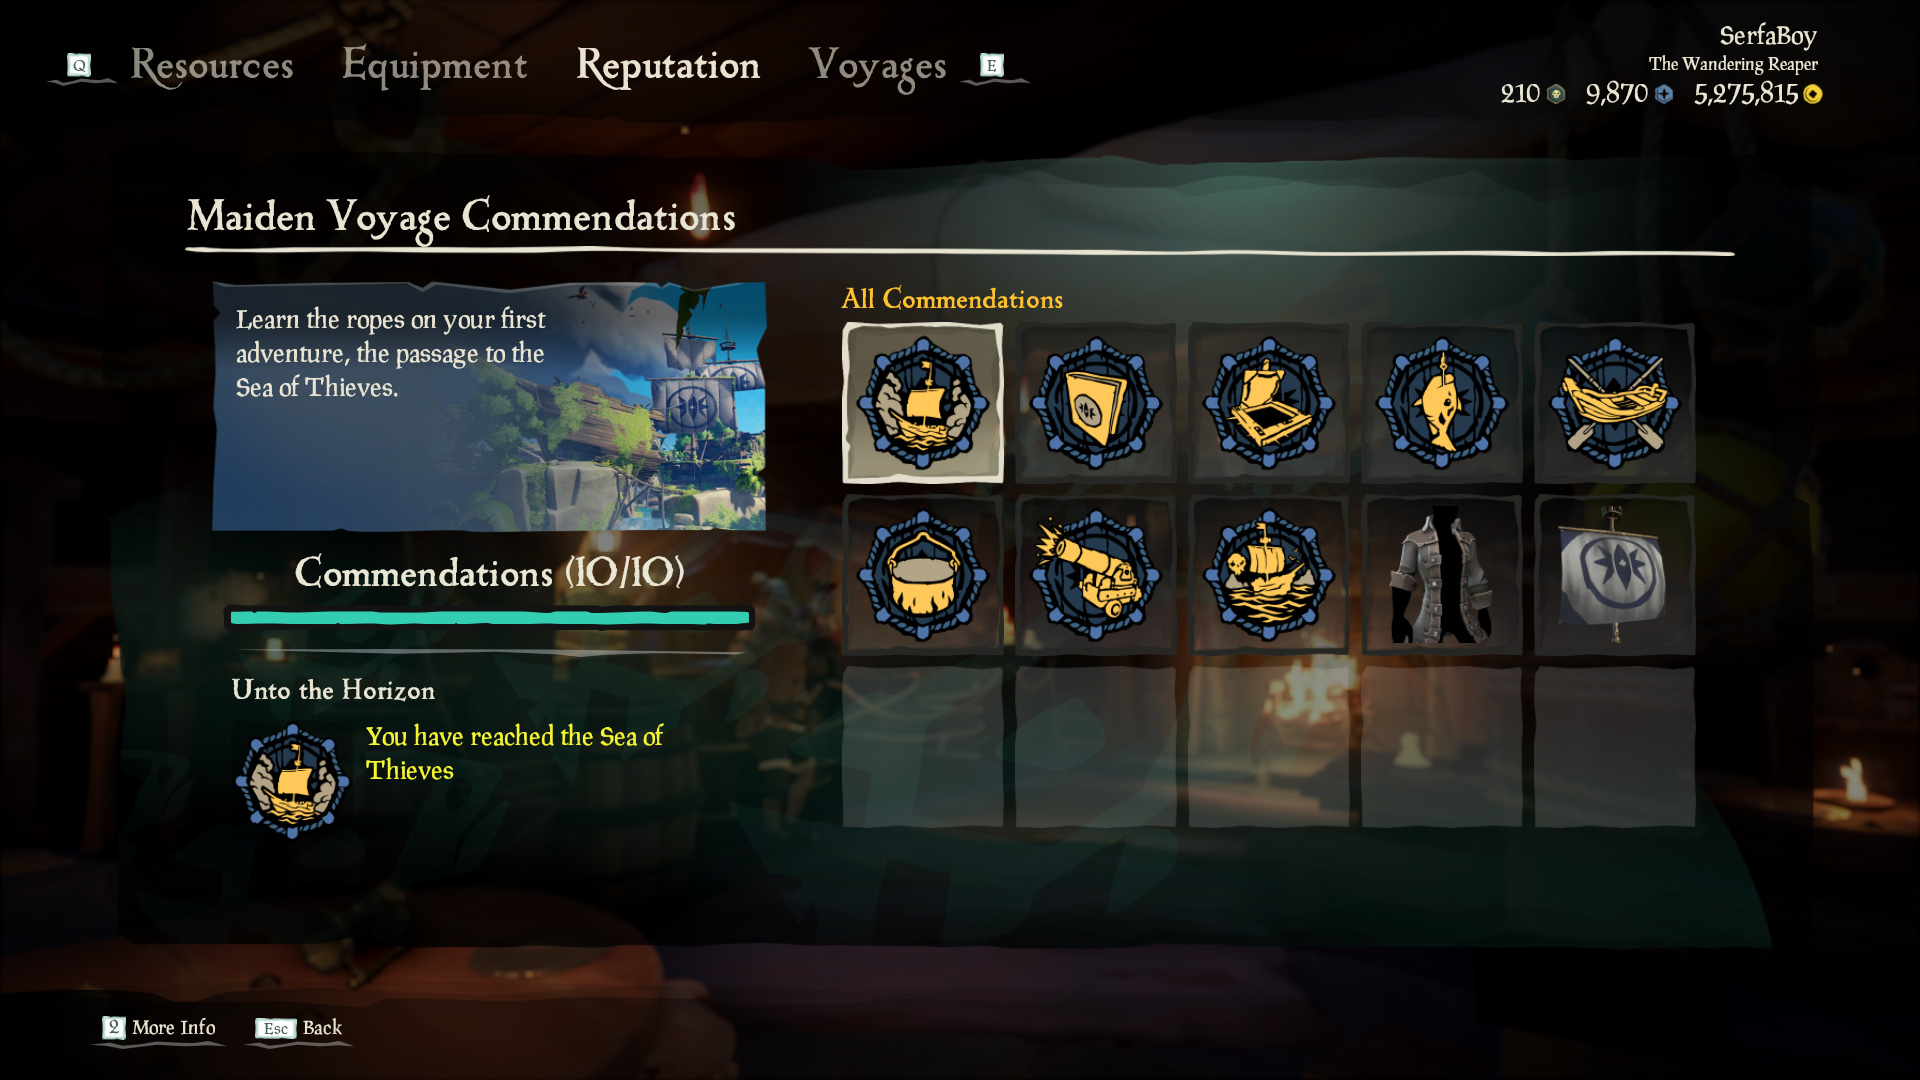 sea of thieves tall tale order maiden voyage